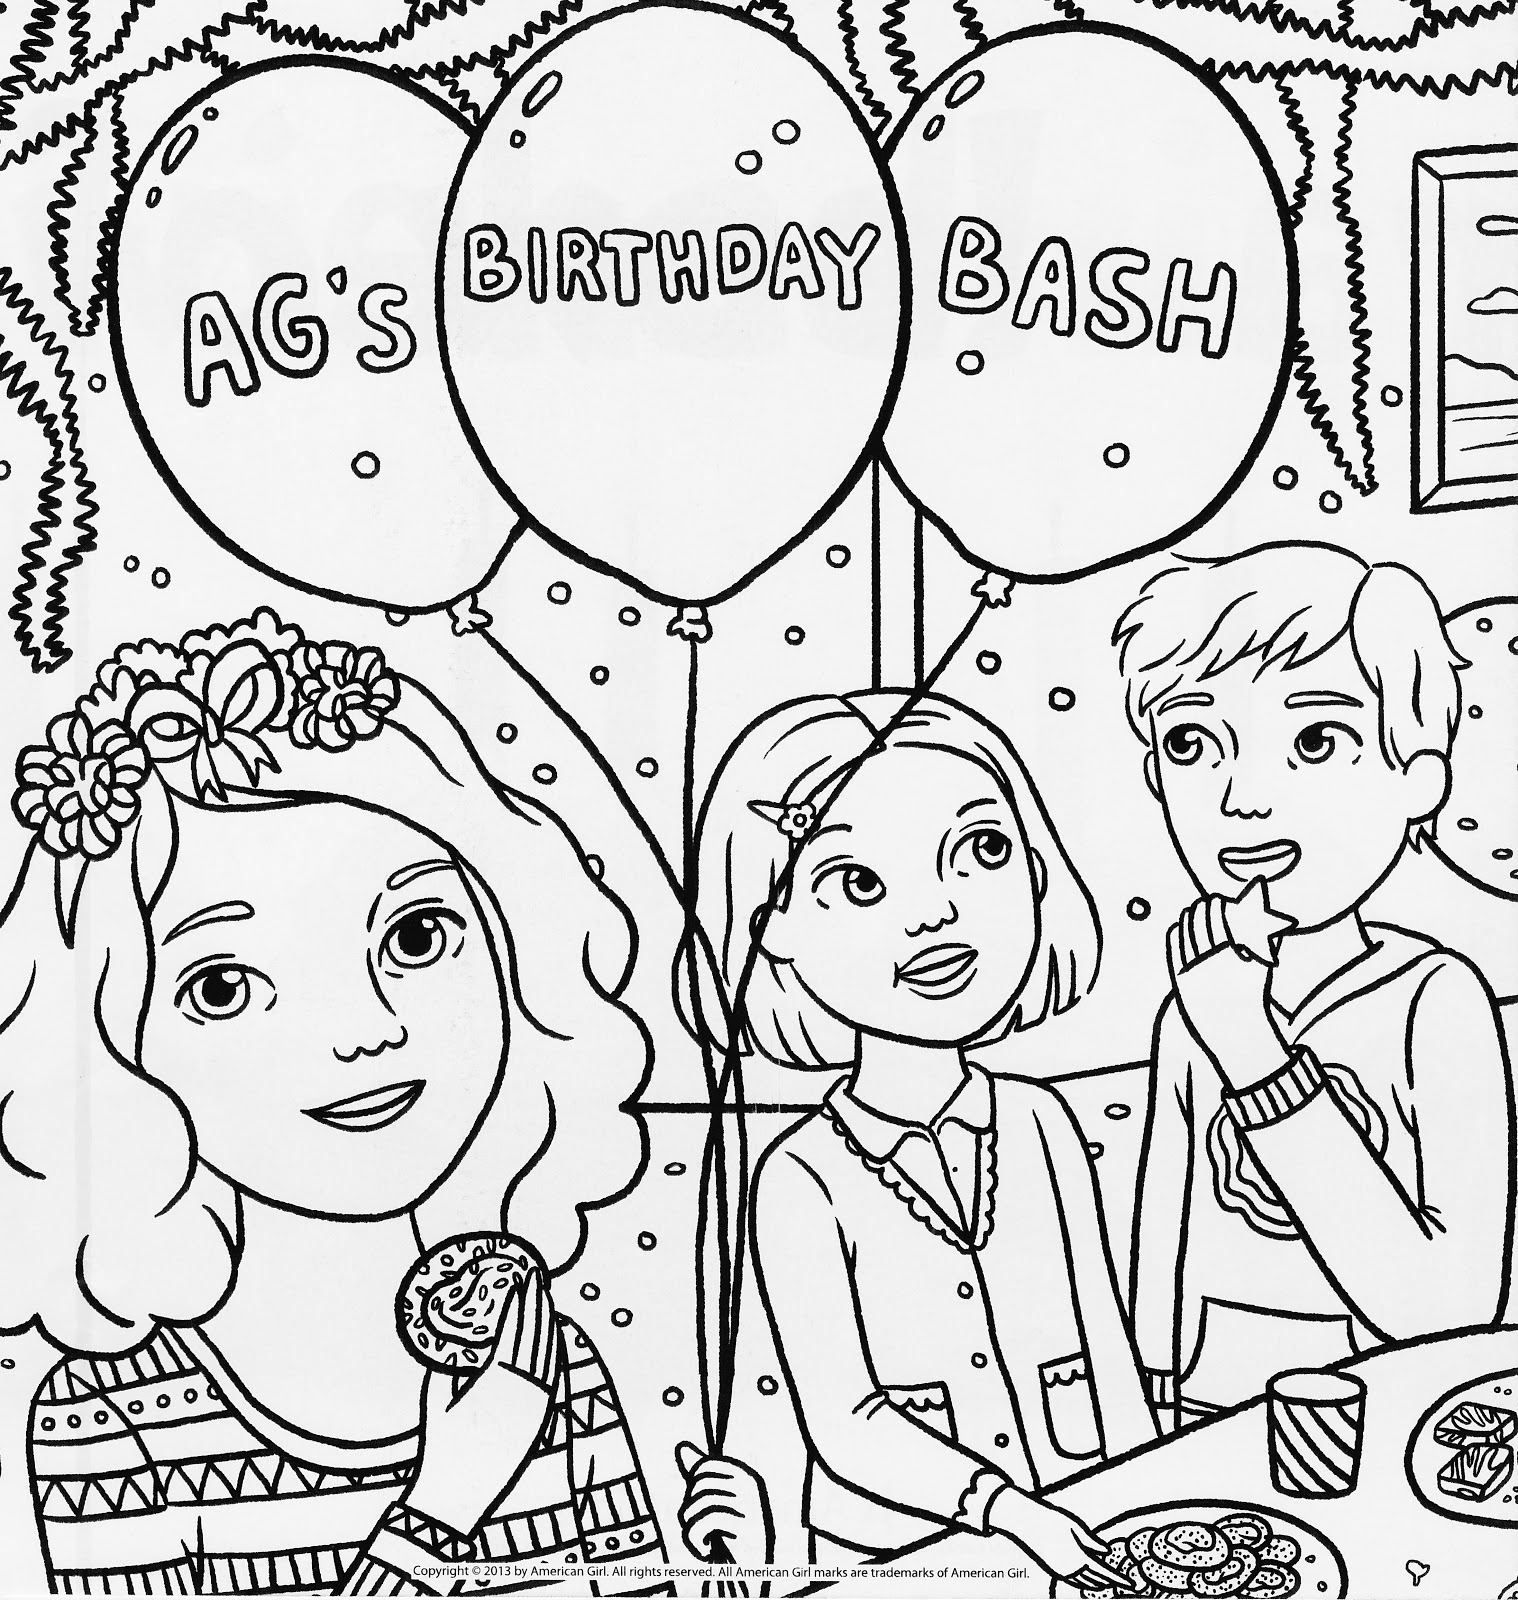 american girl coloring page american girl doll coloring pages educative printable american coloring girl page